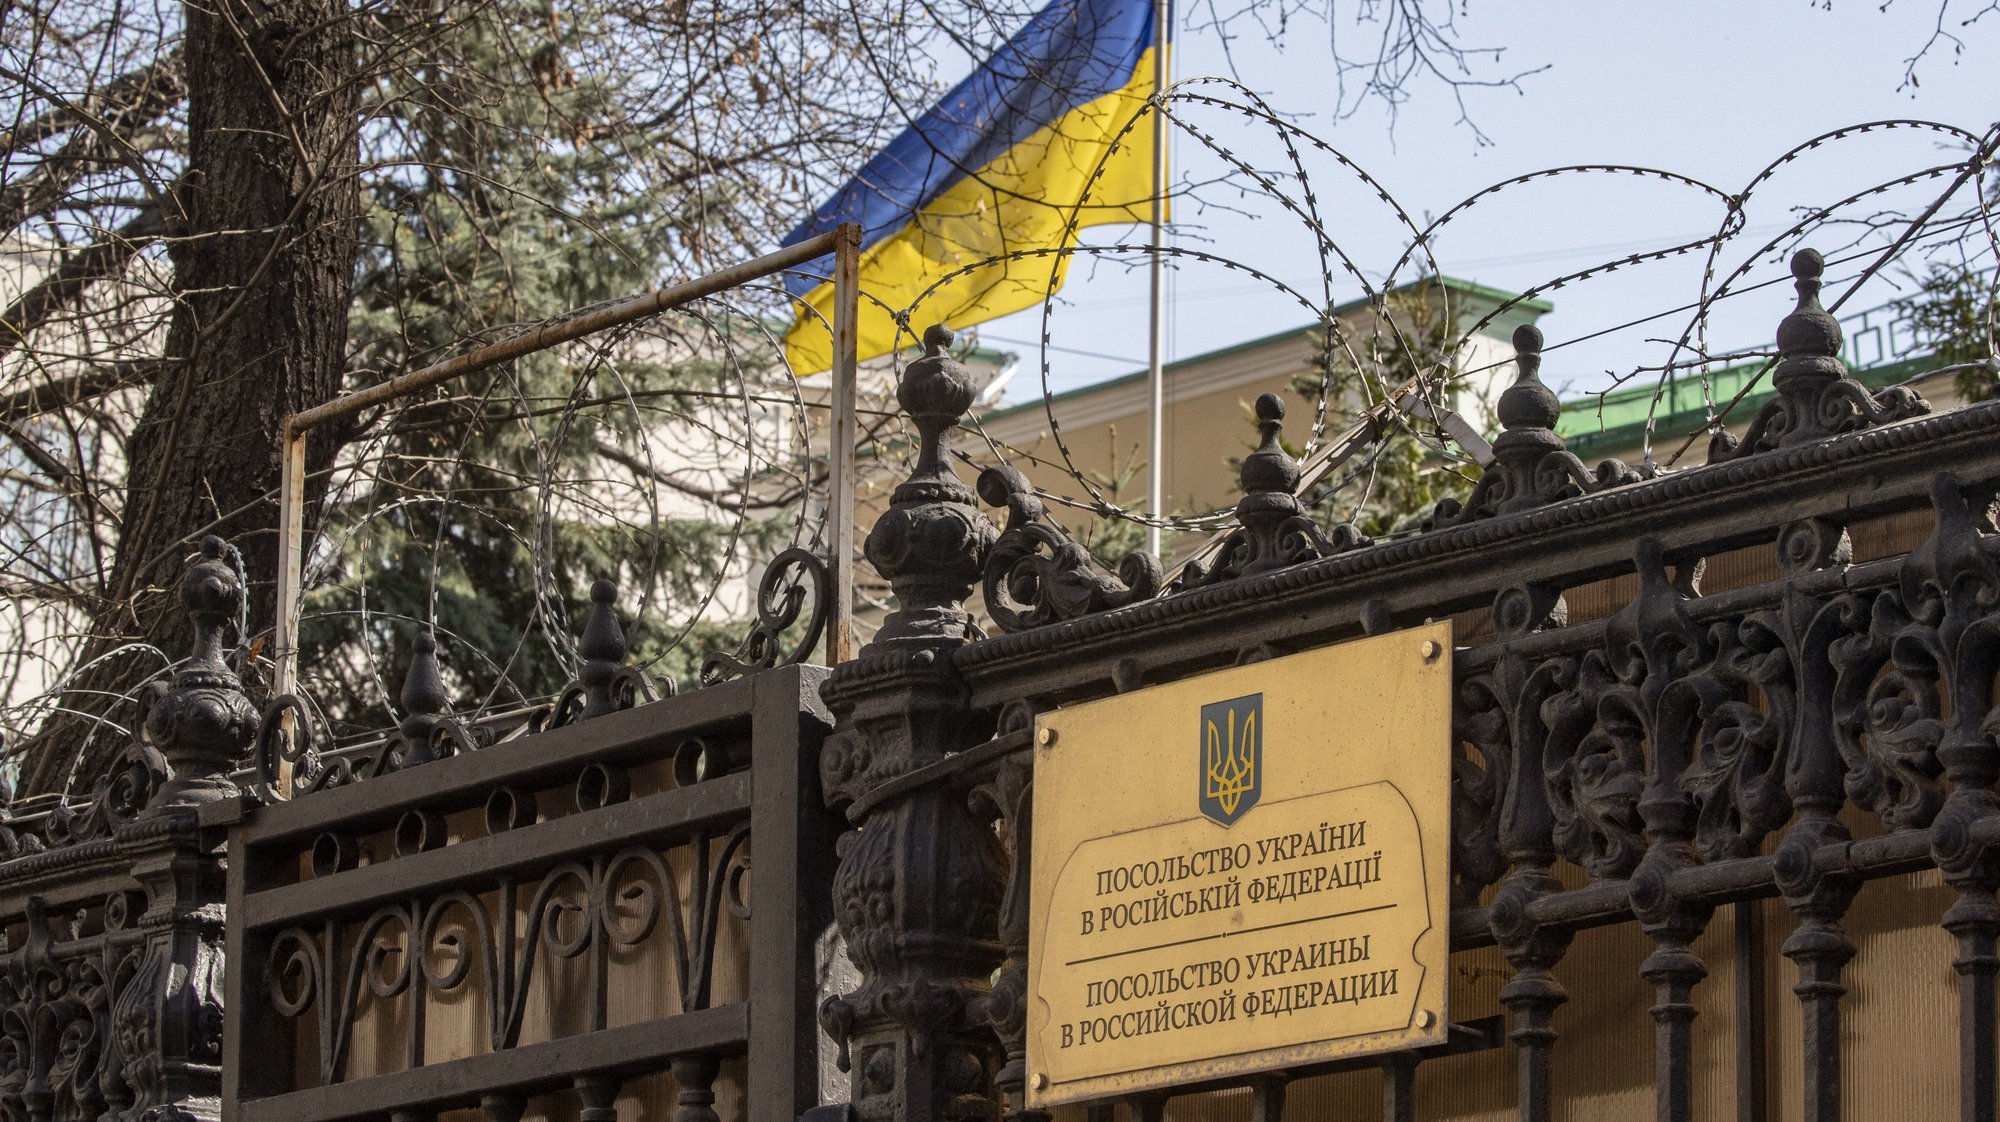 epa09141100 An Ukrainian National flag waves behind the fence of the Ukrainian embassy in Moscow, Russia, 17 April 2021. The Federal Security Service of the Russian Federation announced that Ukrainian consul general Alexander Sosonyuk, on 16 April in St. Petersburg, was detained red-handed while receiving information of a classified nature during a meeting with a Russian citizen.  EPA/SERGEI ILNITSKY